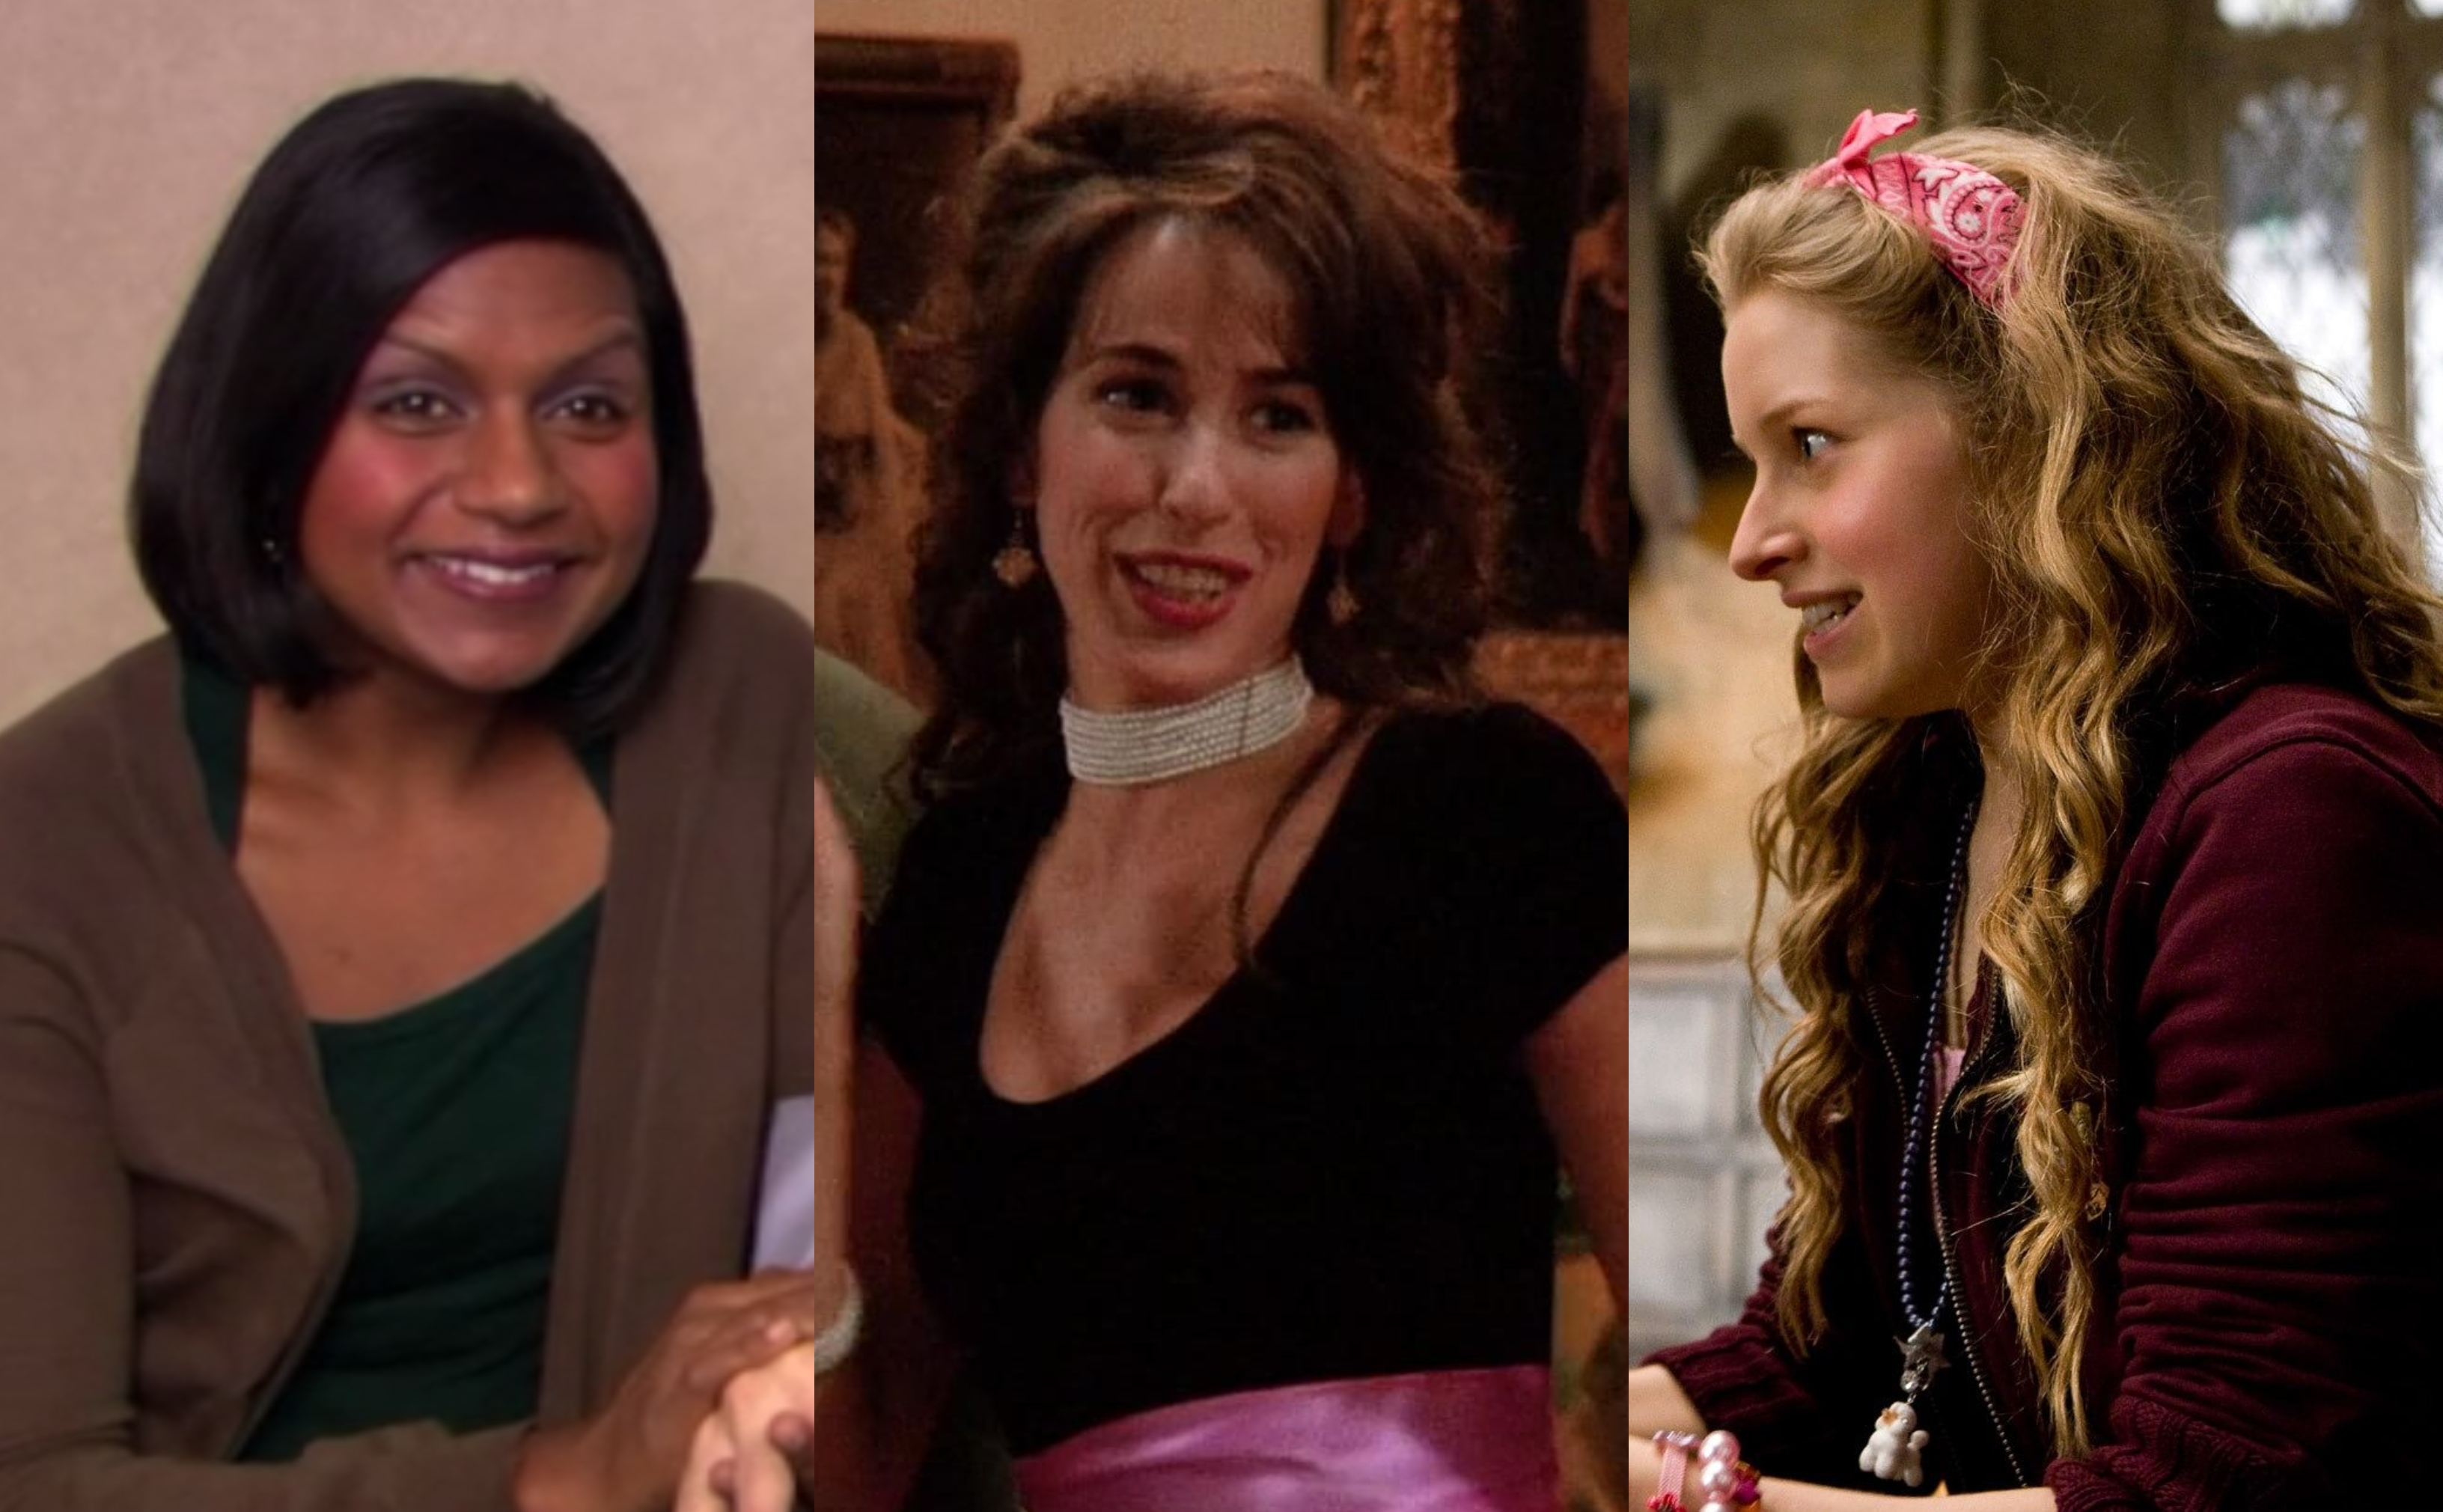 It's safe to say that sometimes they made us want to reach into the screen and tell these fictional girlfriends how annoying they were being. (Photos: Release)